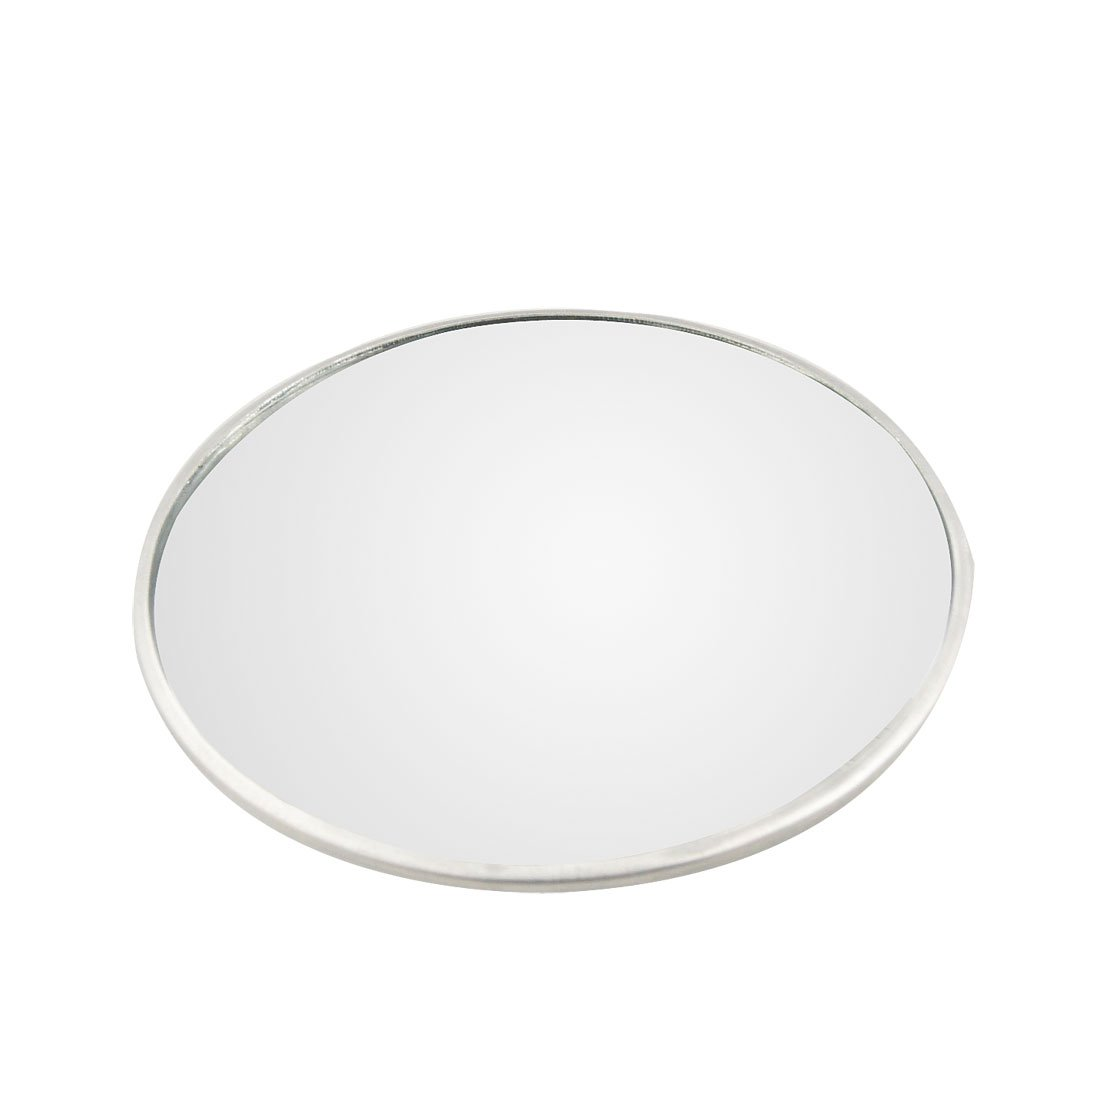 uxcell® Silver Tone 3' Auto Car Wide Angle Round Convex Side Rearview Blind Spot Mirror